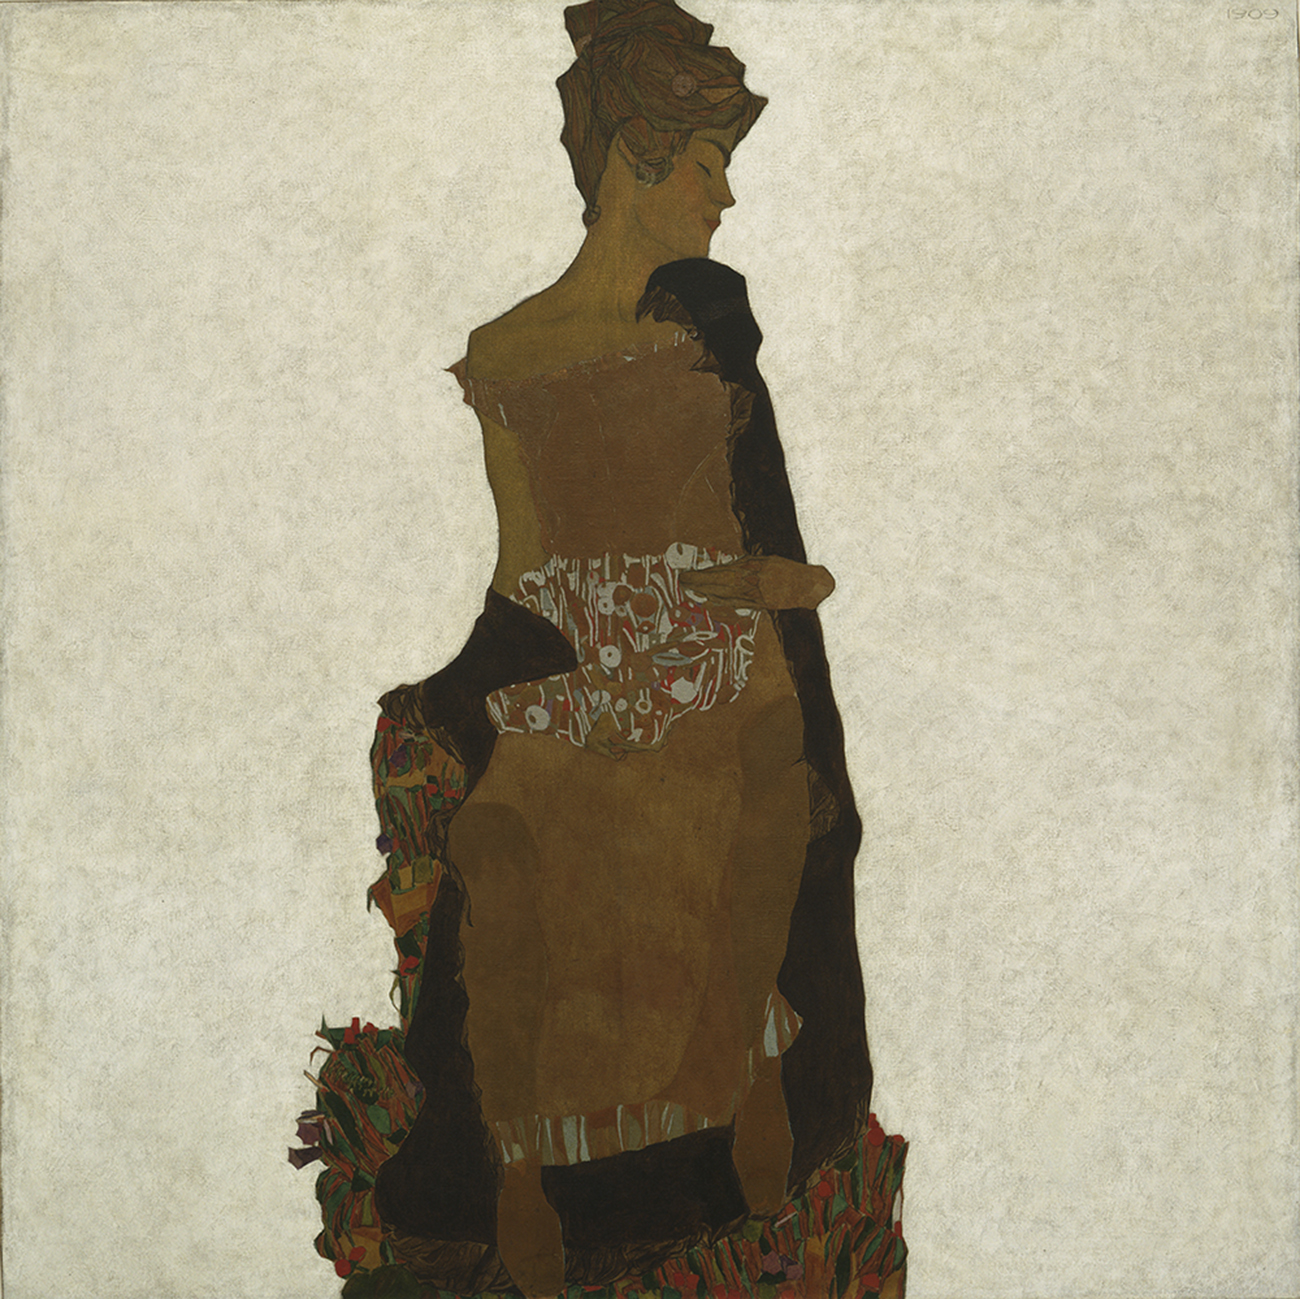 """Egon Schiele, """"Portrait of Gerti Schiele"""" (1909), oil, silver, gold-bronze paint, and pencil on canvas (collection of The Museum of Modern Art, New York. Purchase and partial gift of the Lauder family, 1982, and Private Collection Digital Image © The Museum of Modern Art/Licensed by SCALA / Art Resource, NY) (click to enlarge)"""